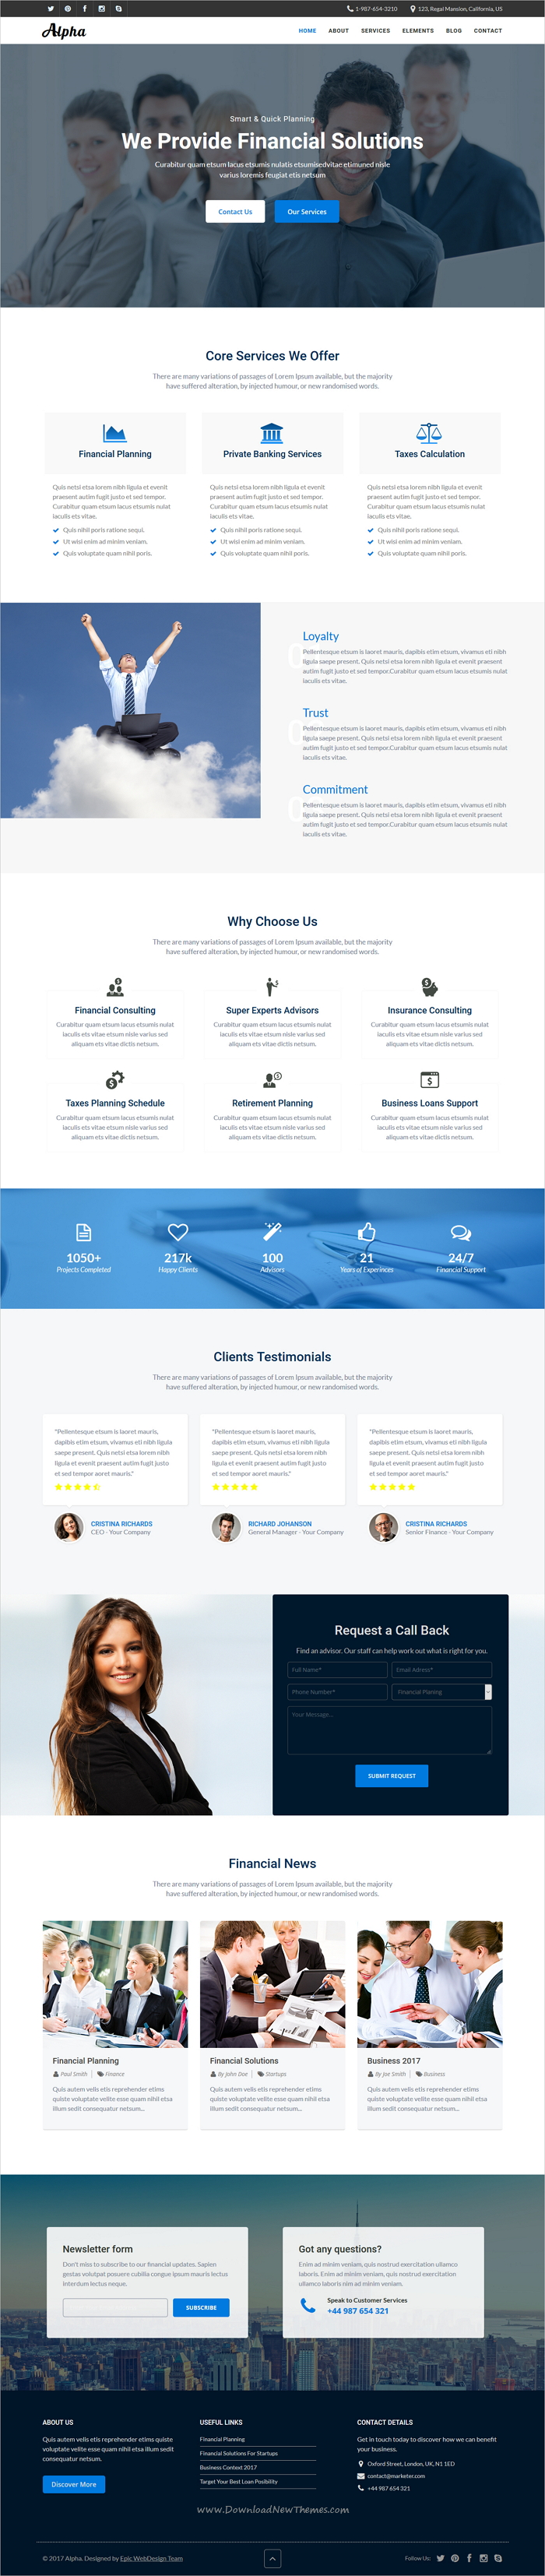 Alpha Business Consulting And Financial Services Html Template Consulting Business Templates Financial Services